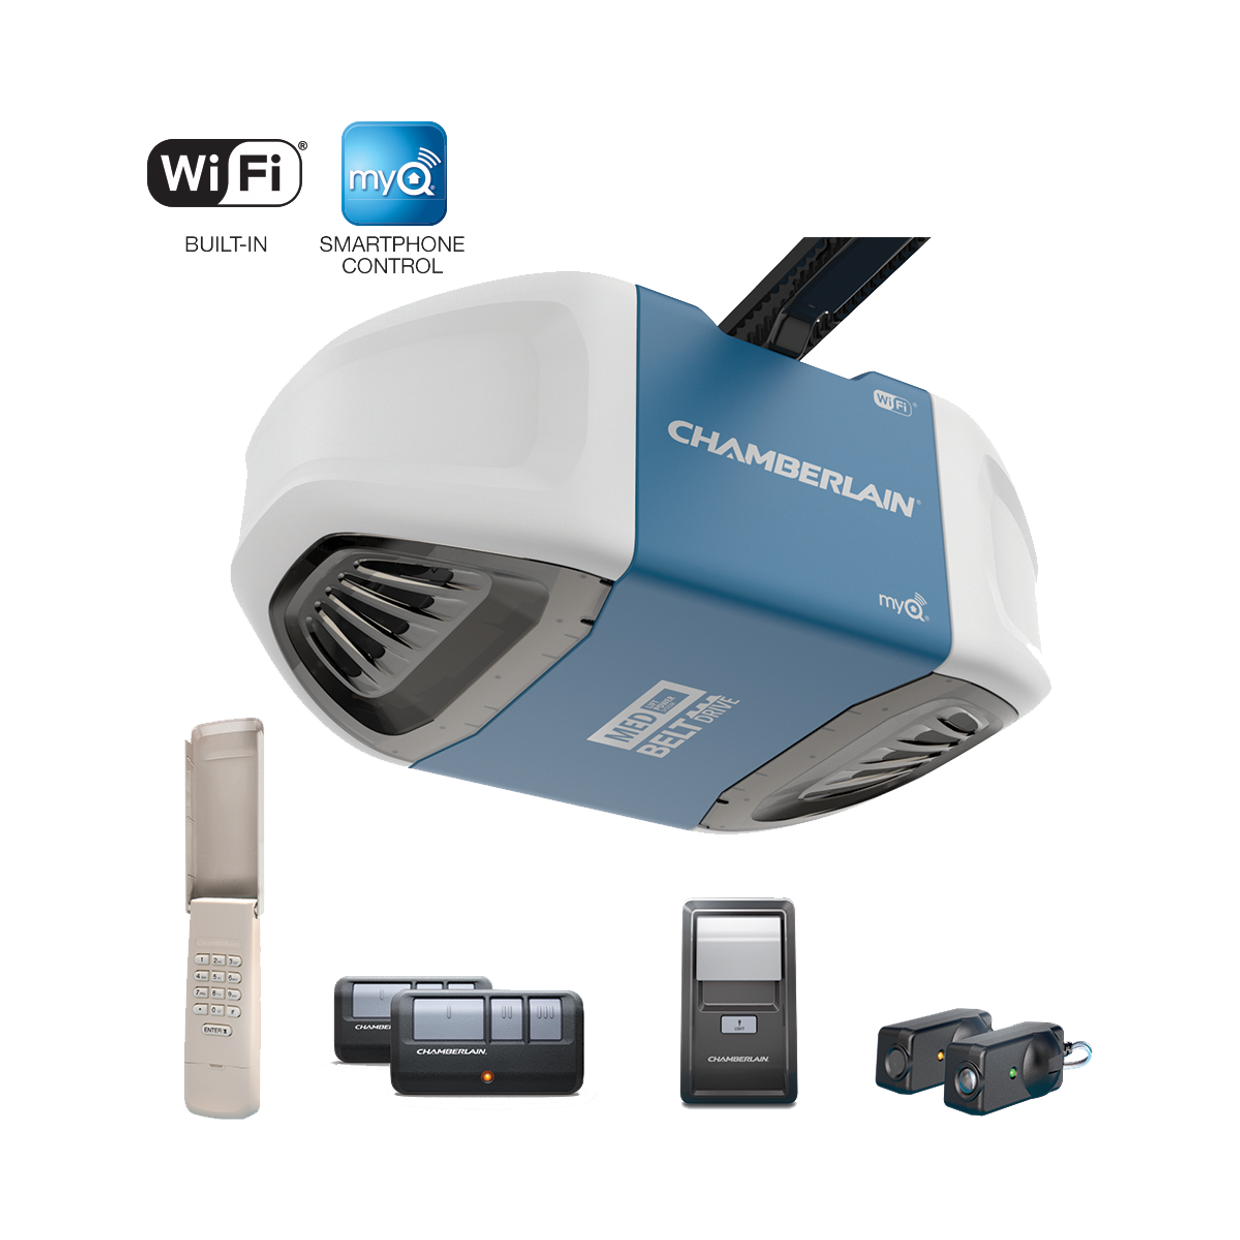 B550 B550C Smartphone-Controlled Ultra-Quiet Strong-Belt-Drive Garage Door Opener with MED Lifting Power IN BOX